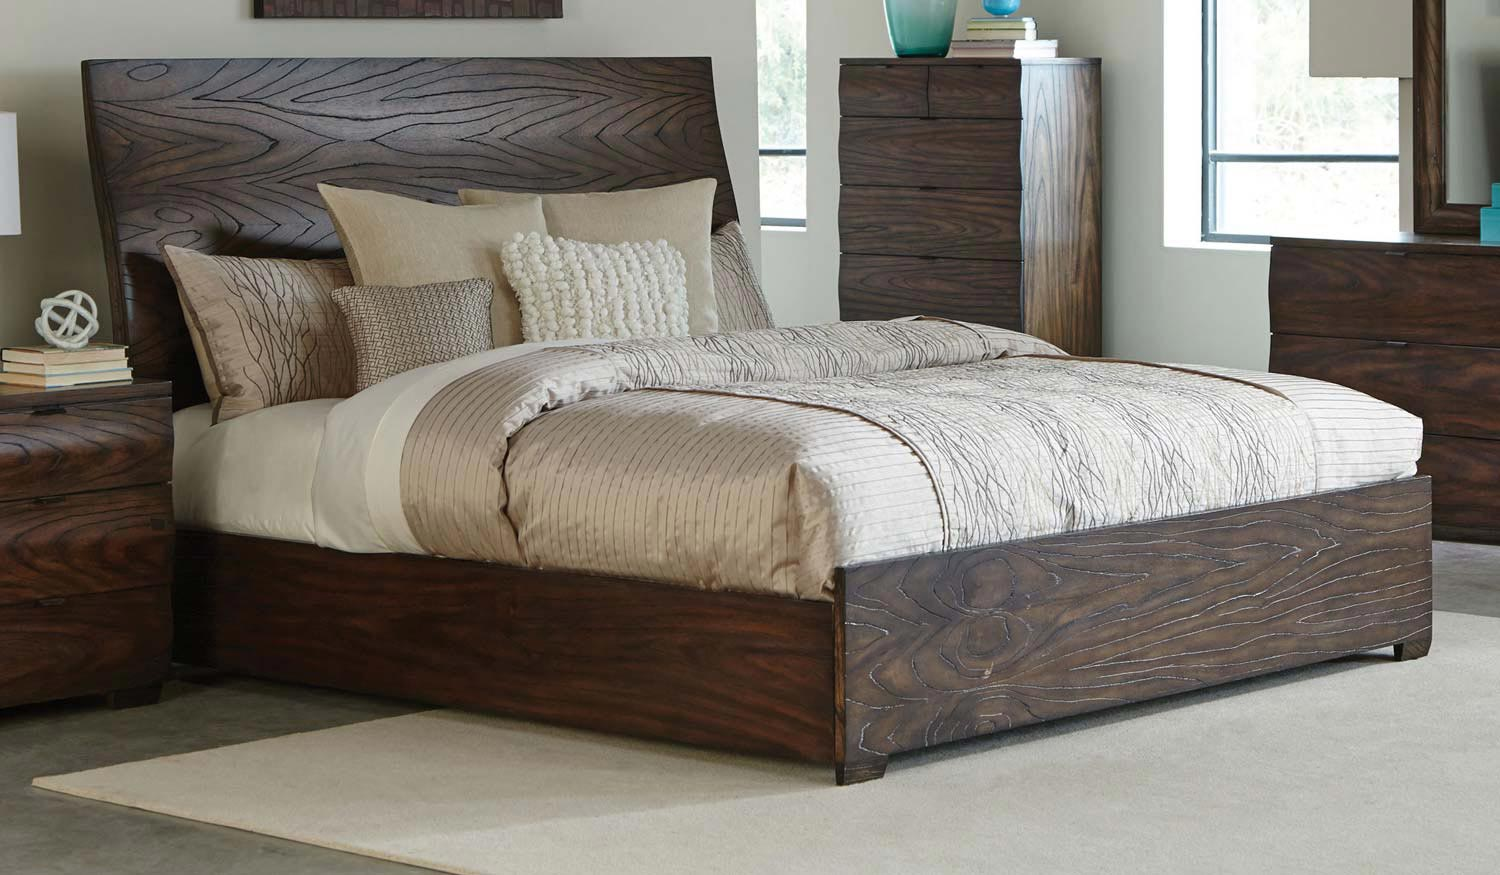 Coaster Calabasas Bed - Dark Brown